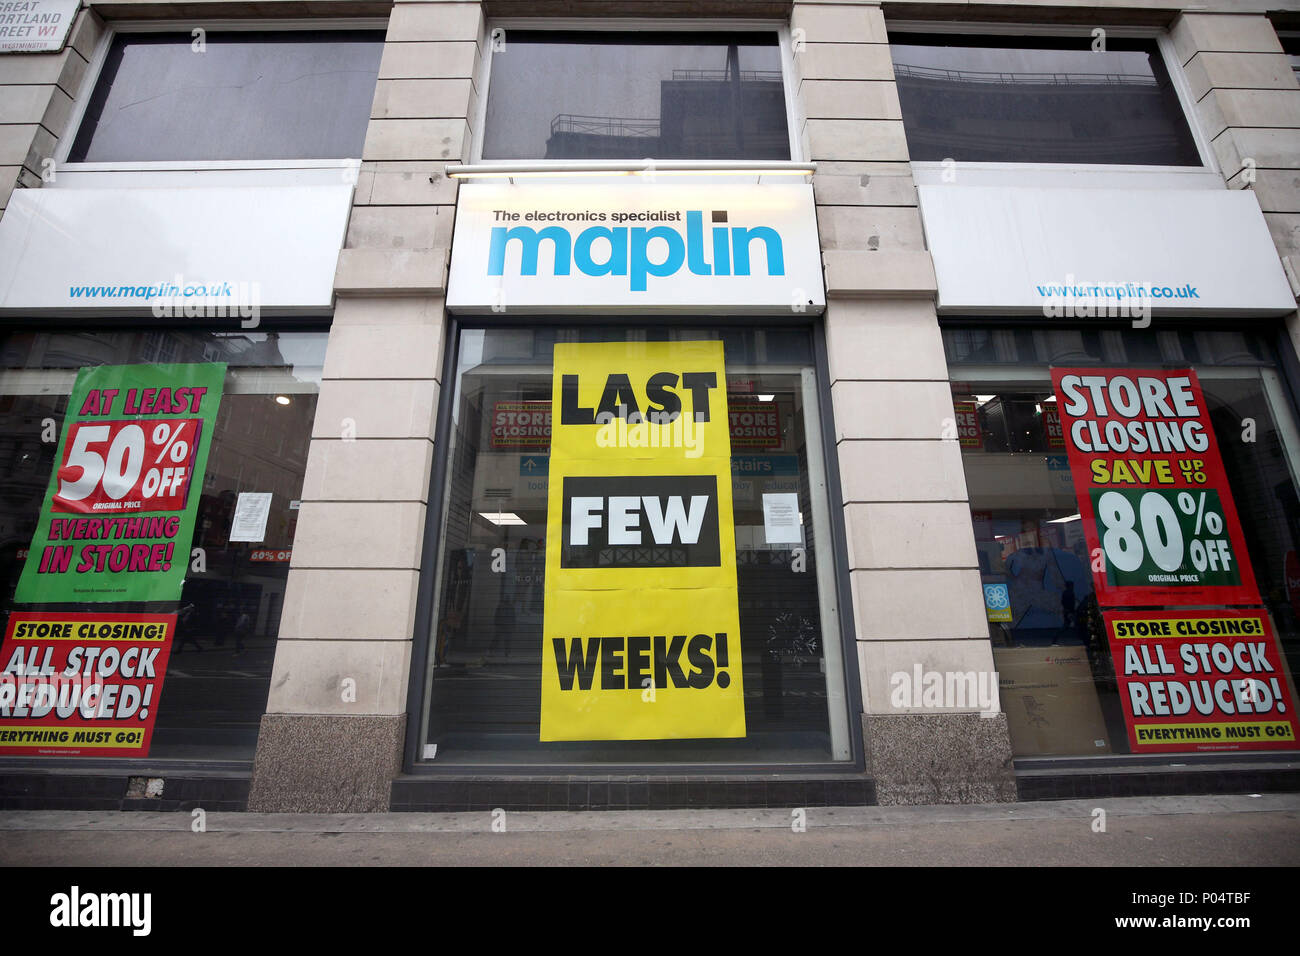 A Maplin store, in its last few weeks of trading, in central London. - Stock Image